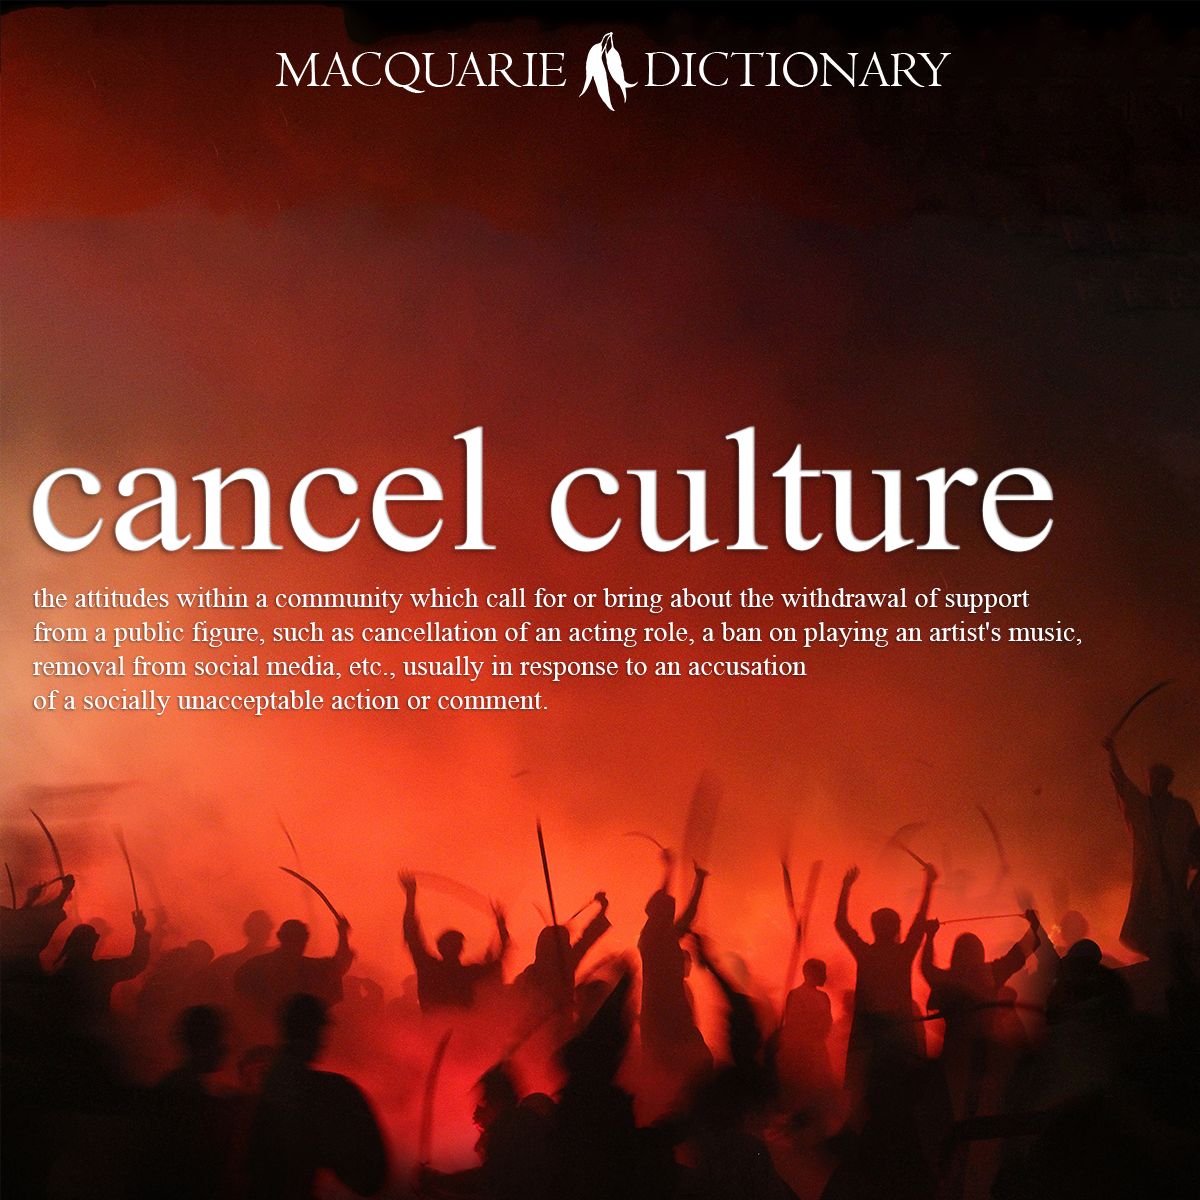 cancel culture - the attitudes within a community which call for or bring about the withdrawal of support from a public figure, such as cancellation of an acting role, a ban on playing an artist's music, removal from social media, etc., usually in response to an accusation of a socially unacceptable action or comment.